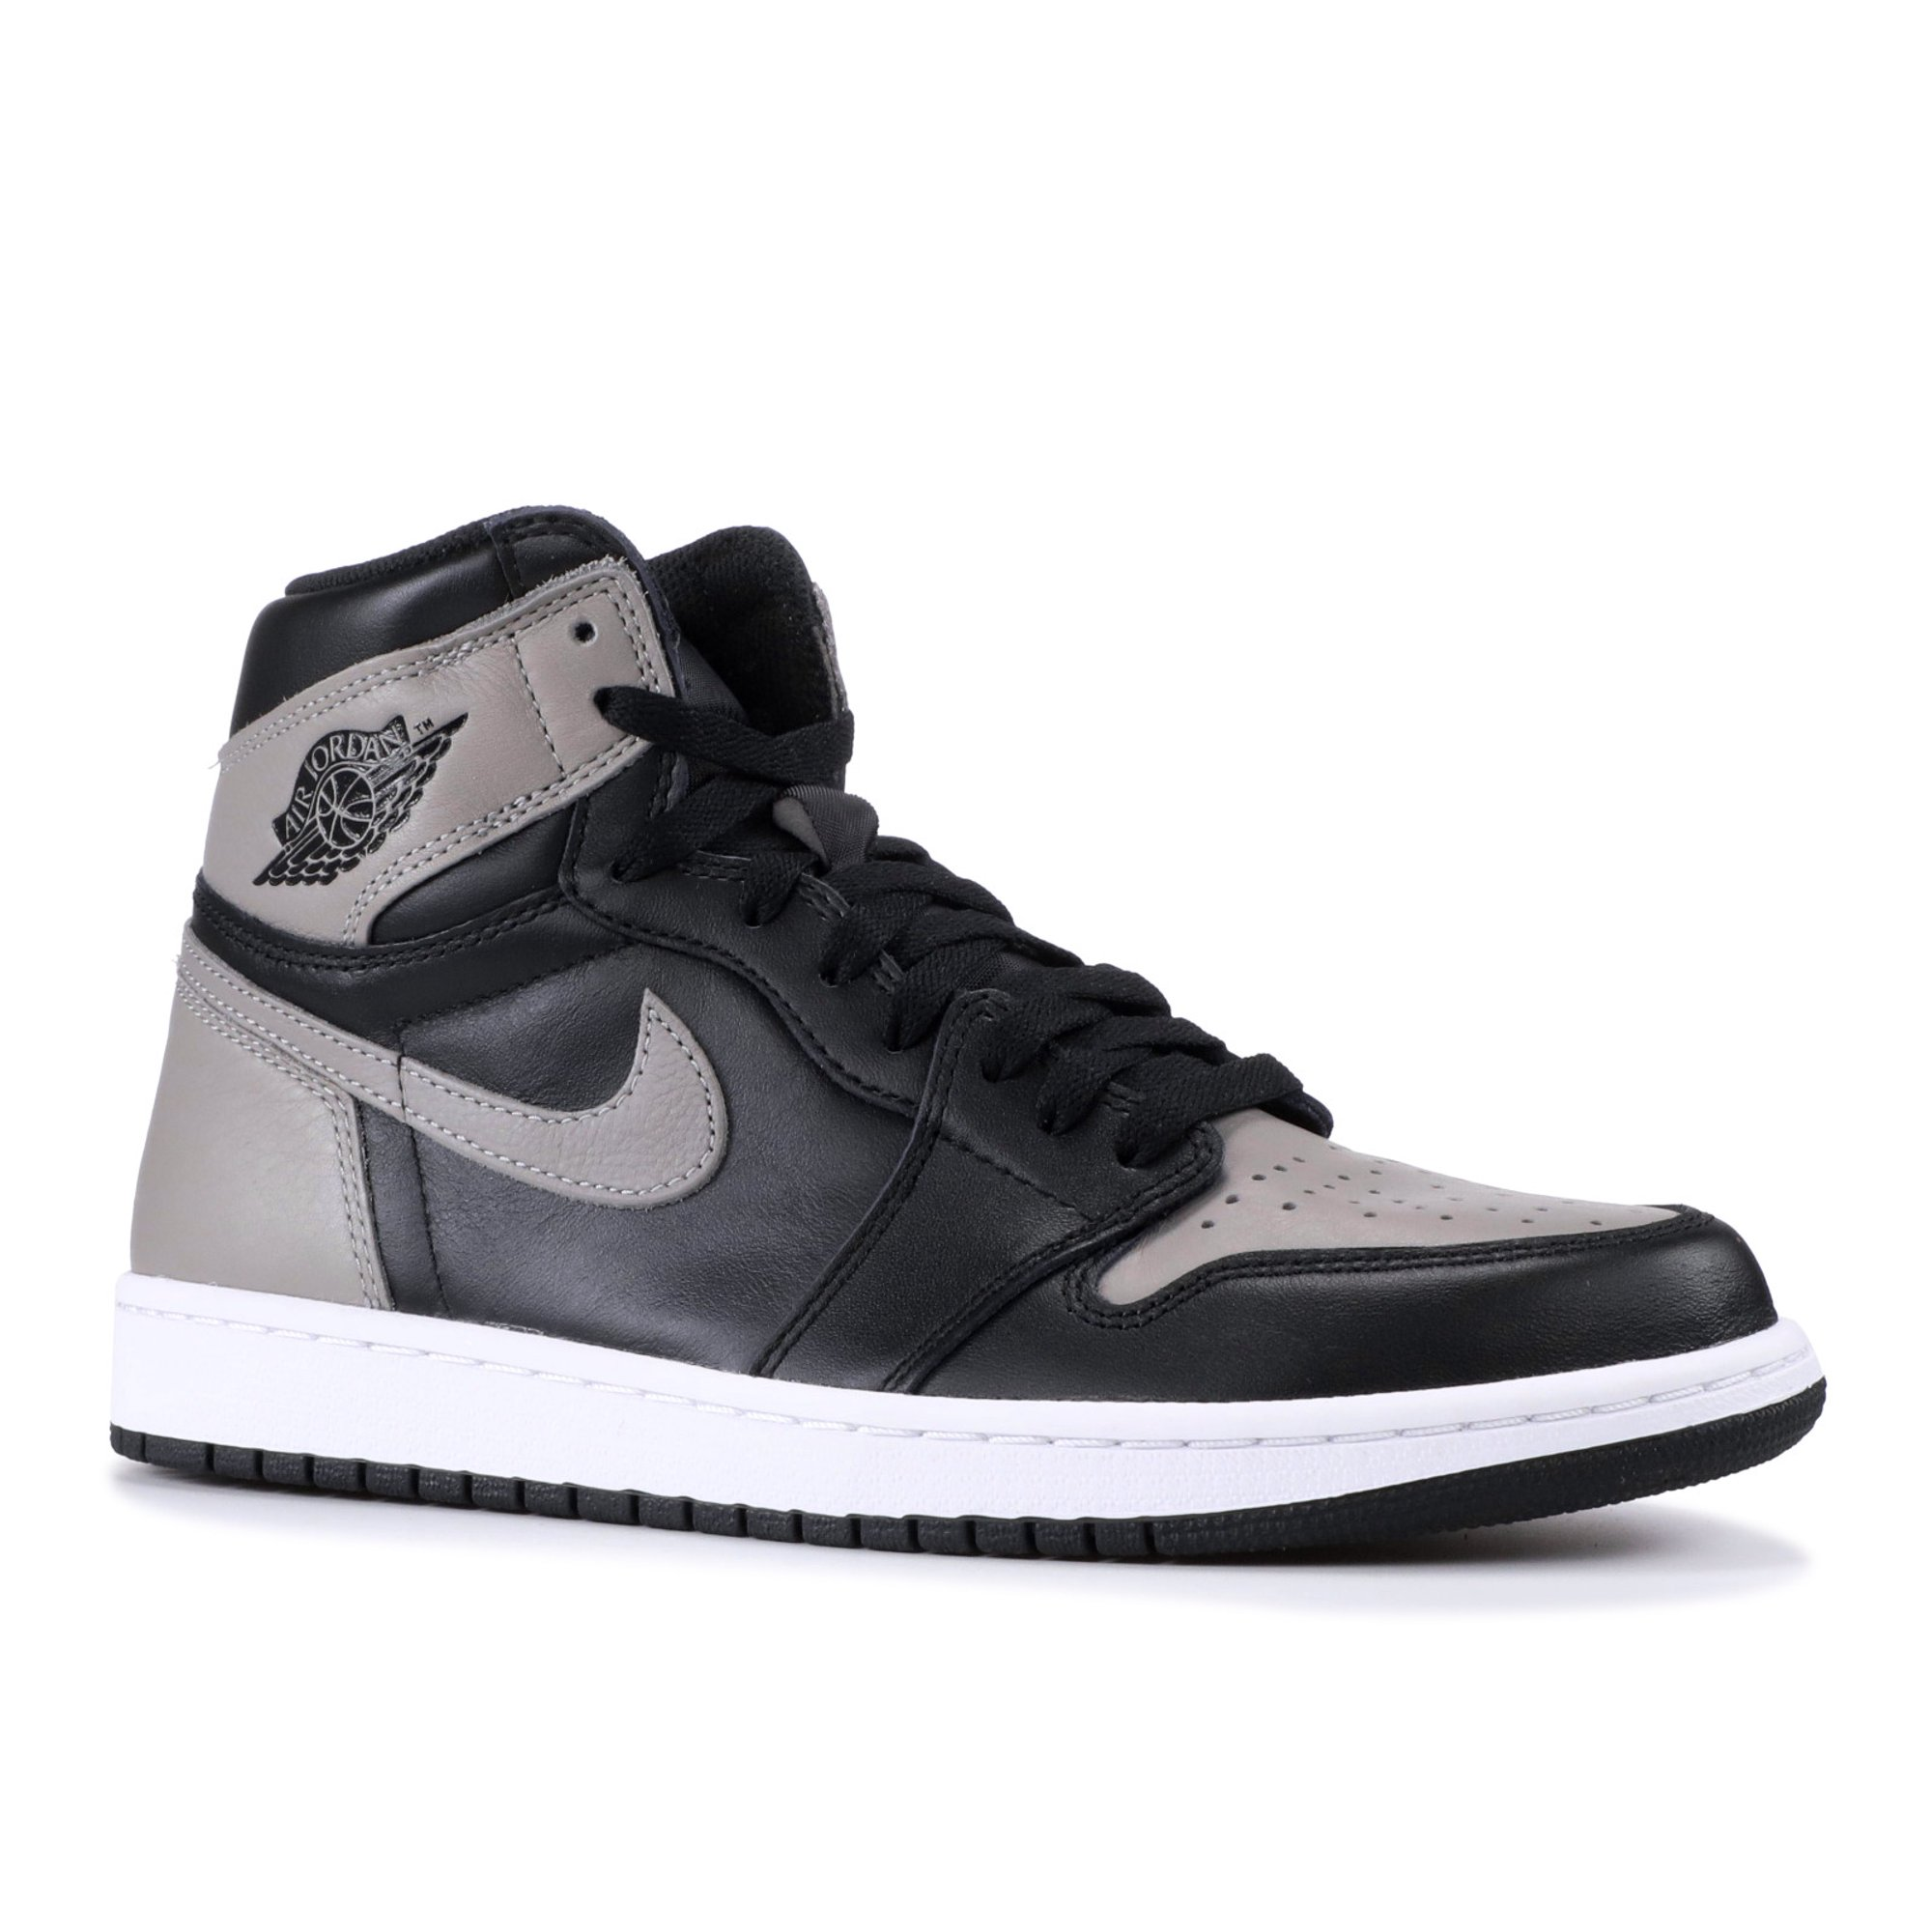 aa81b7262702 Air Jordan - Men - Air Jordan 1 Retro High Og  Shadow  - 555088-013 - Size  9